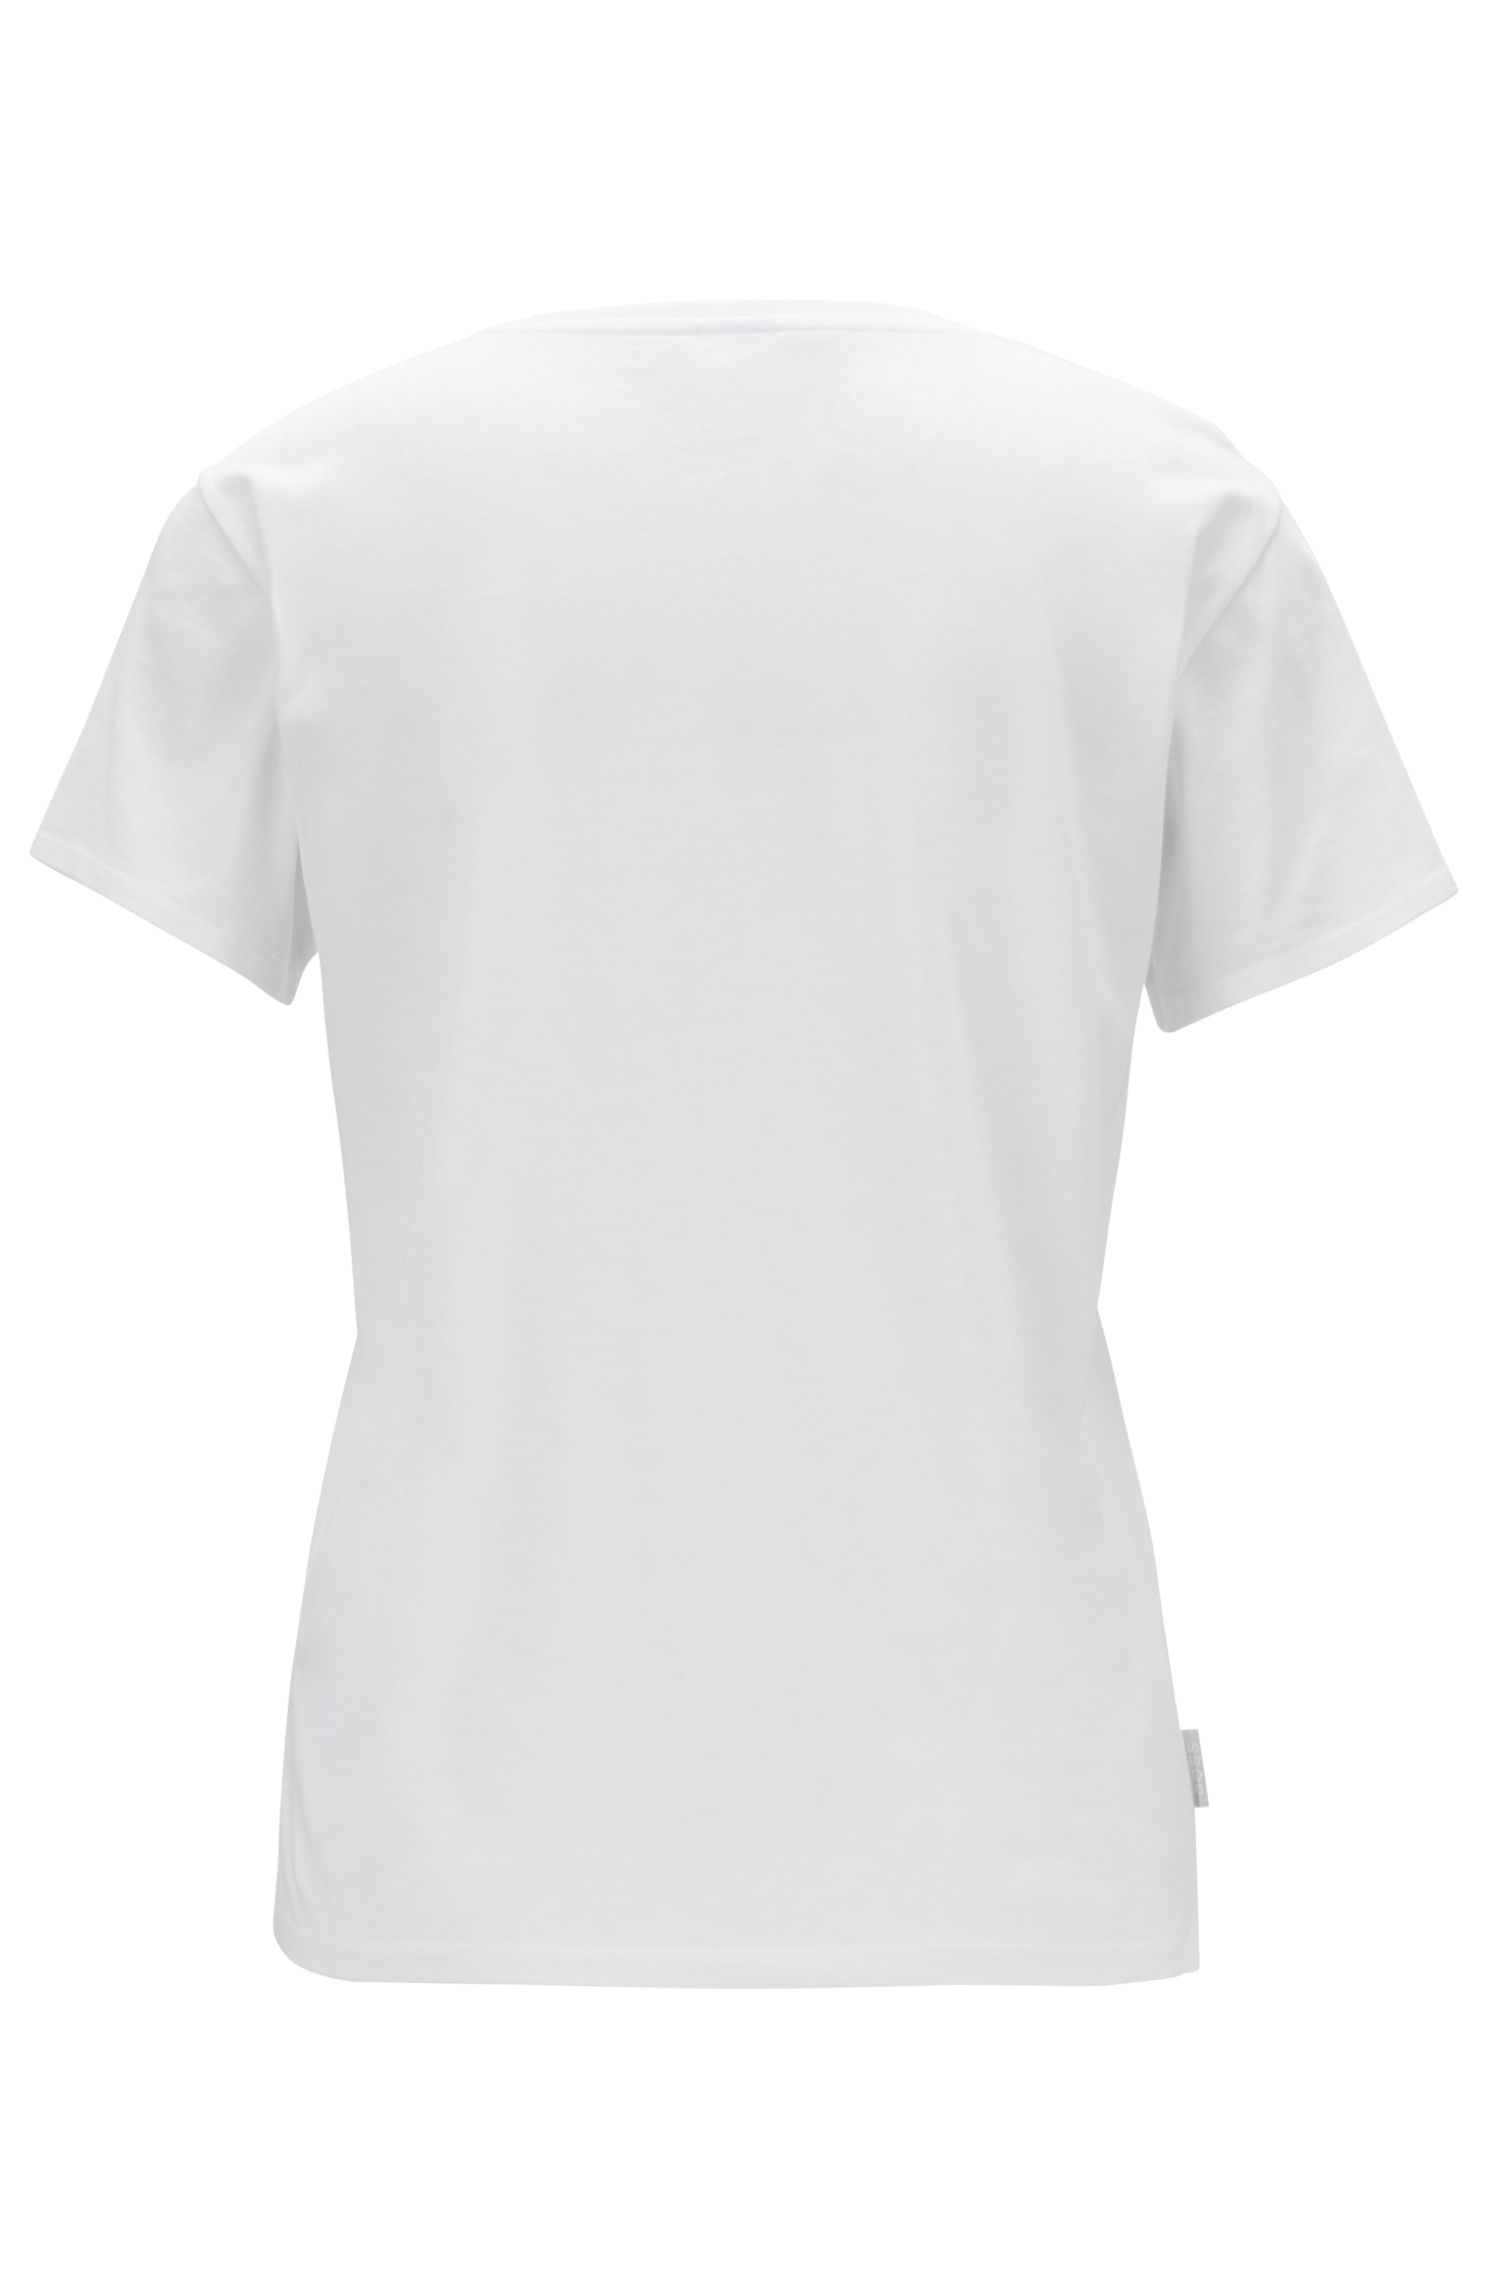 Cotton-modal blend T-shirt with ribbed neckline, White